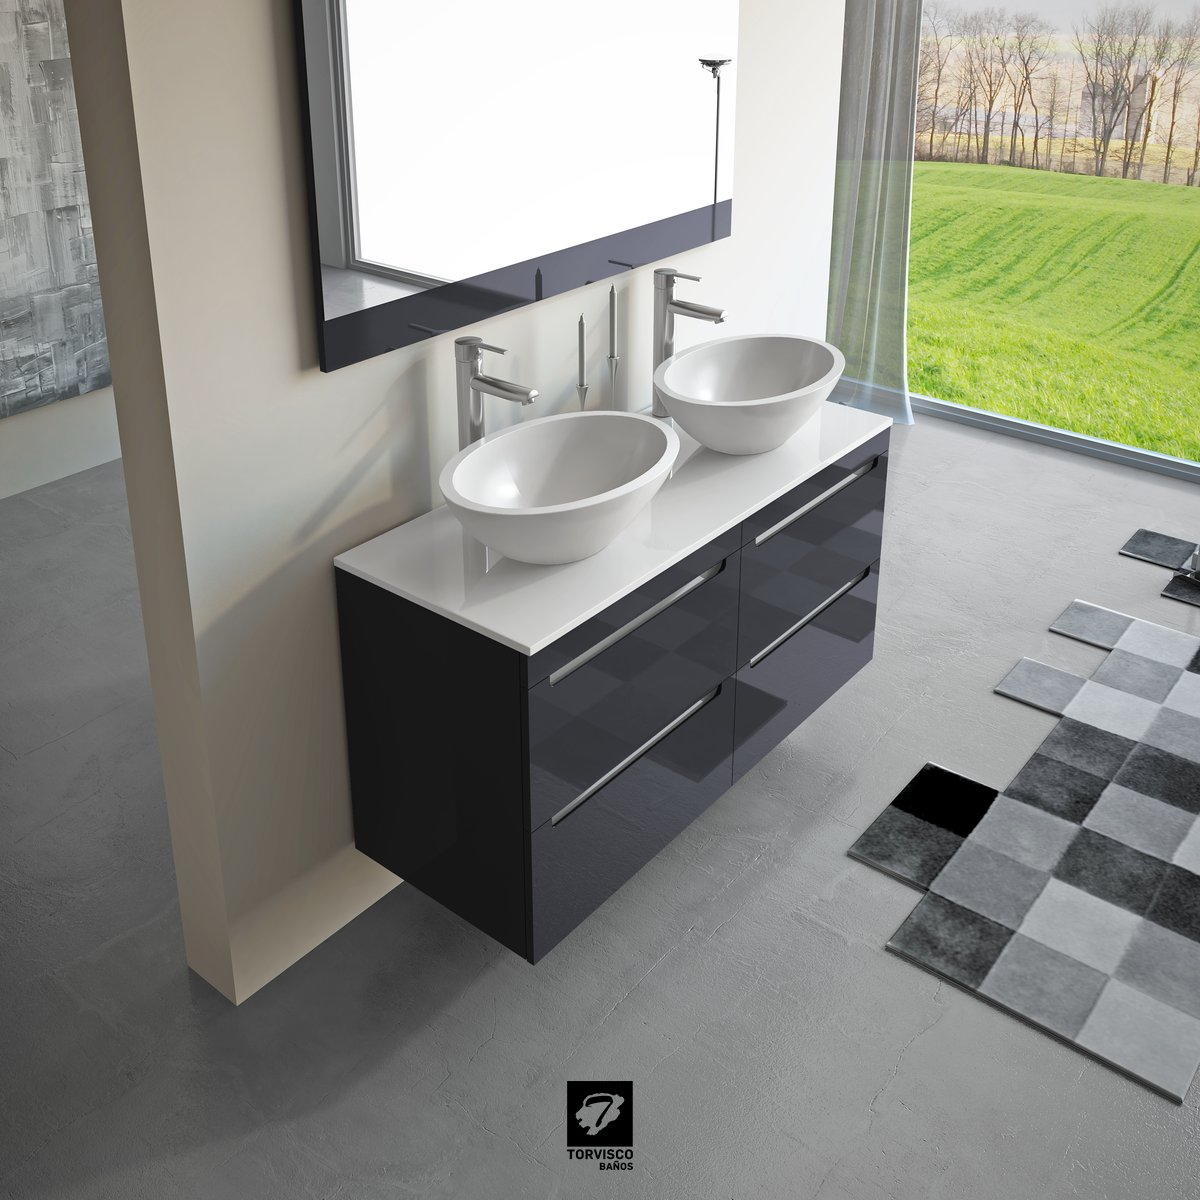 Mueble Loa Torvisco - Loa Urban Muebles De Ba O Torvisco Ba Os[mjhdah]http://www.chicbathrooms.ie/wp-content/uploads/2017/03/loa_40y60_mueble_torvisco_banos.jpg